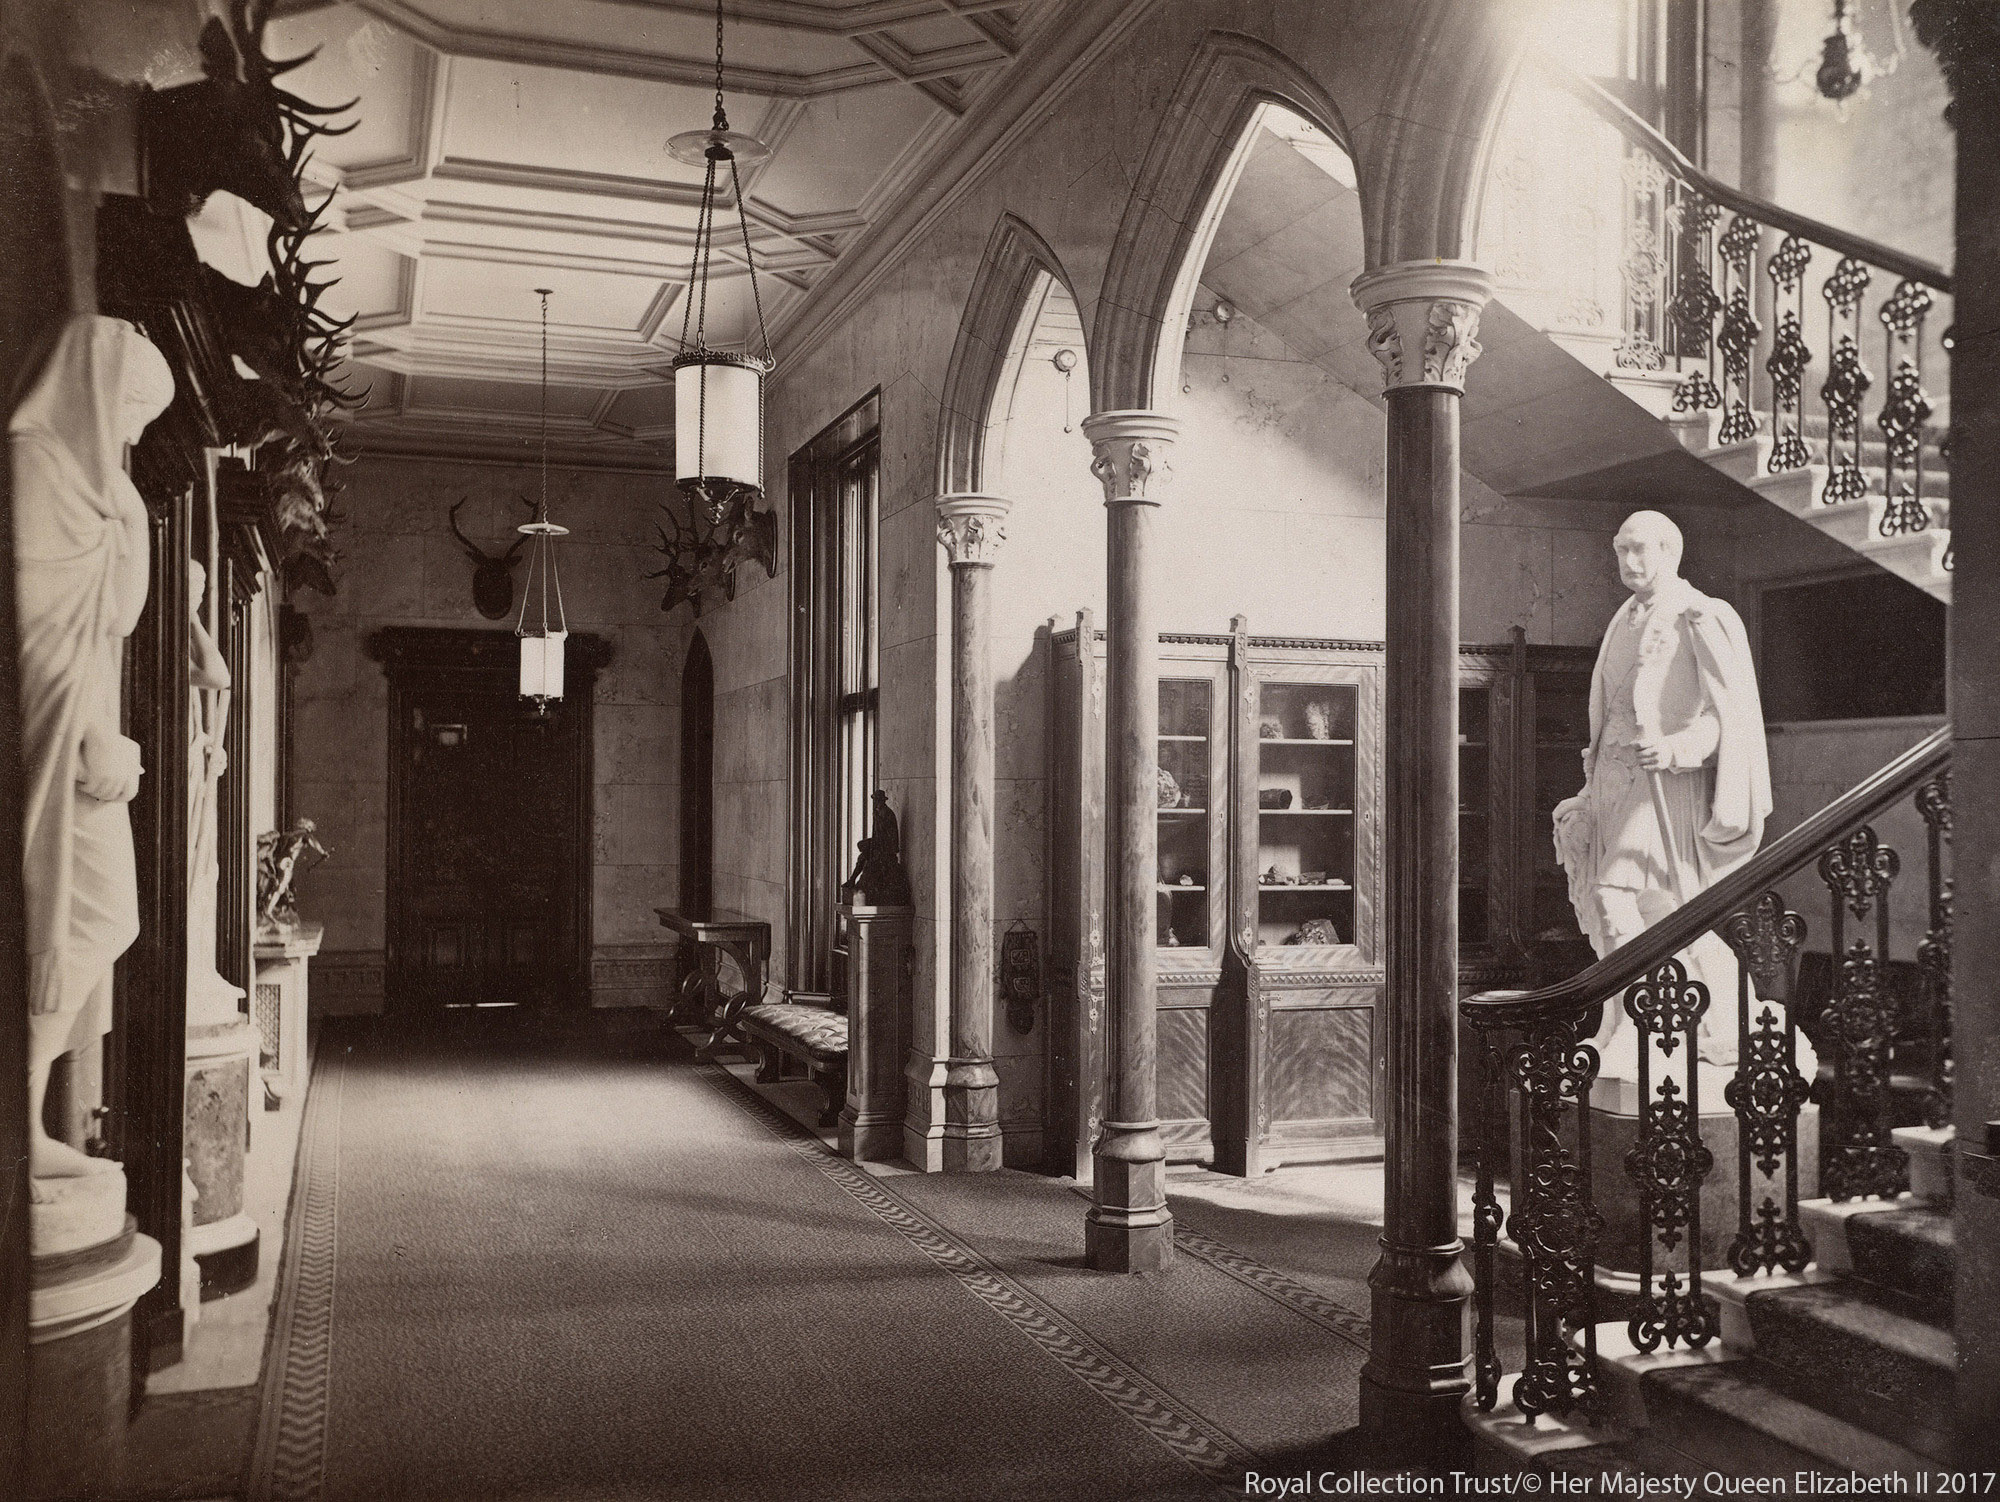 The interior of Balmoral Castle